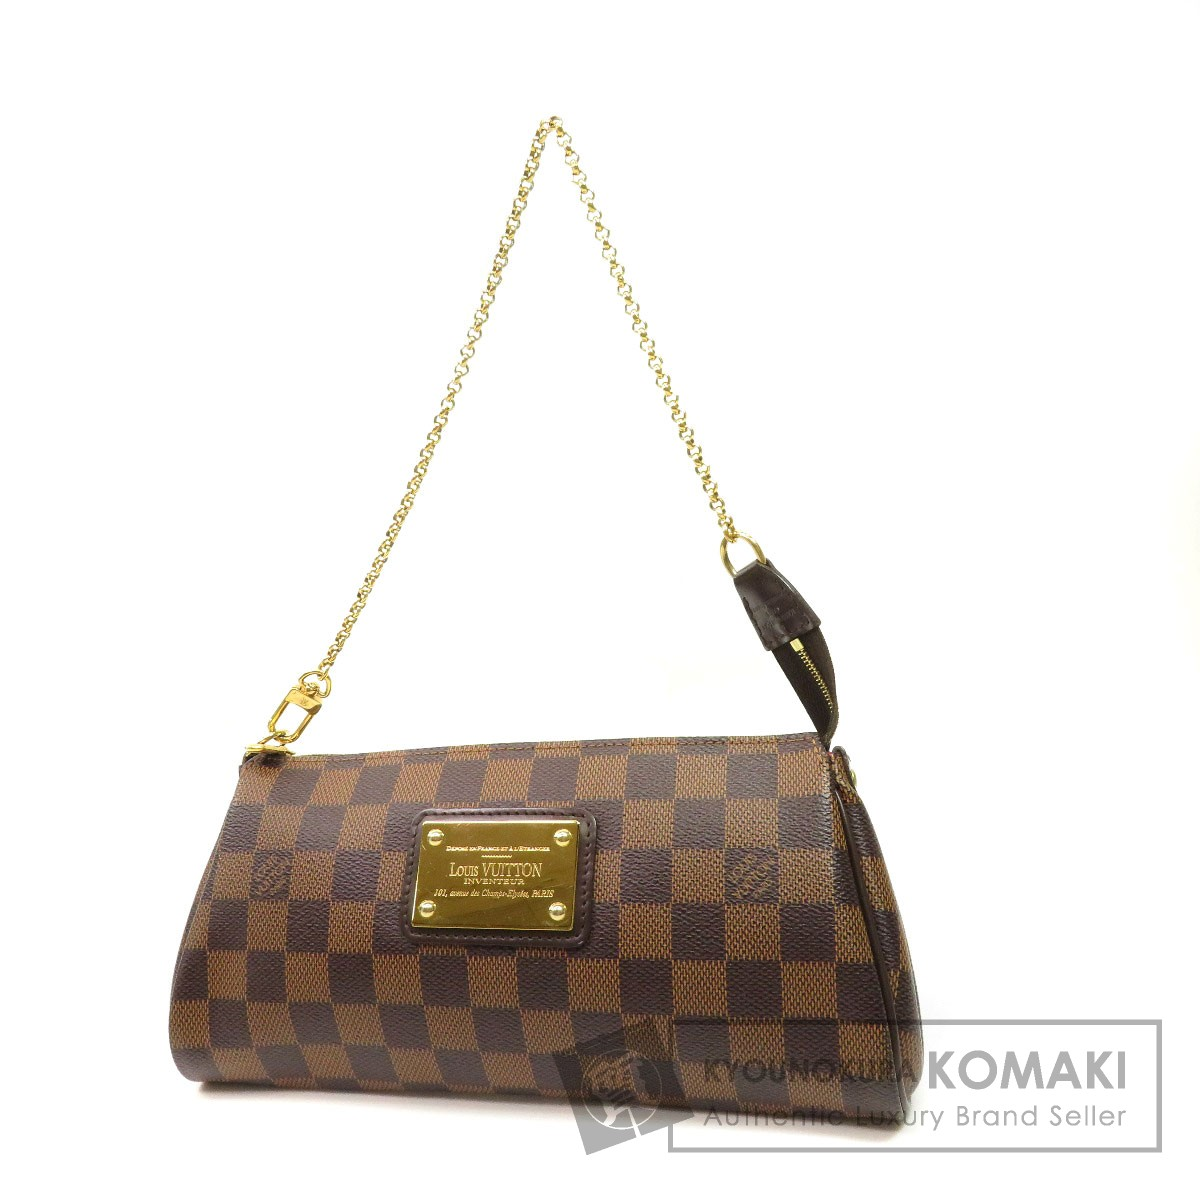 finest selection a945d ccdd3 LOUIS VUITTON 分割 本物 N55213 エヴァ ショルダーバッグ 激安 ...